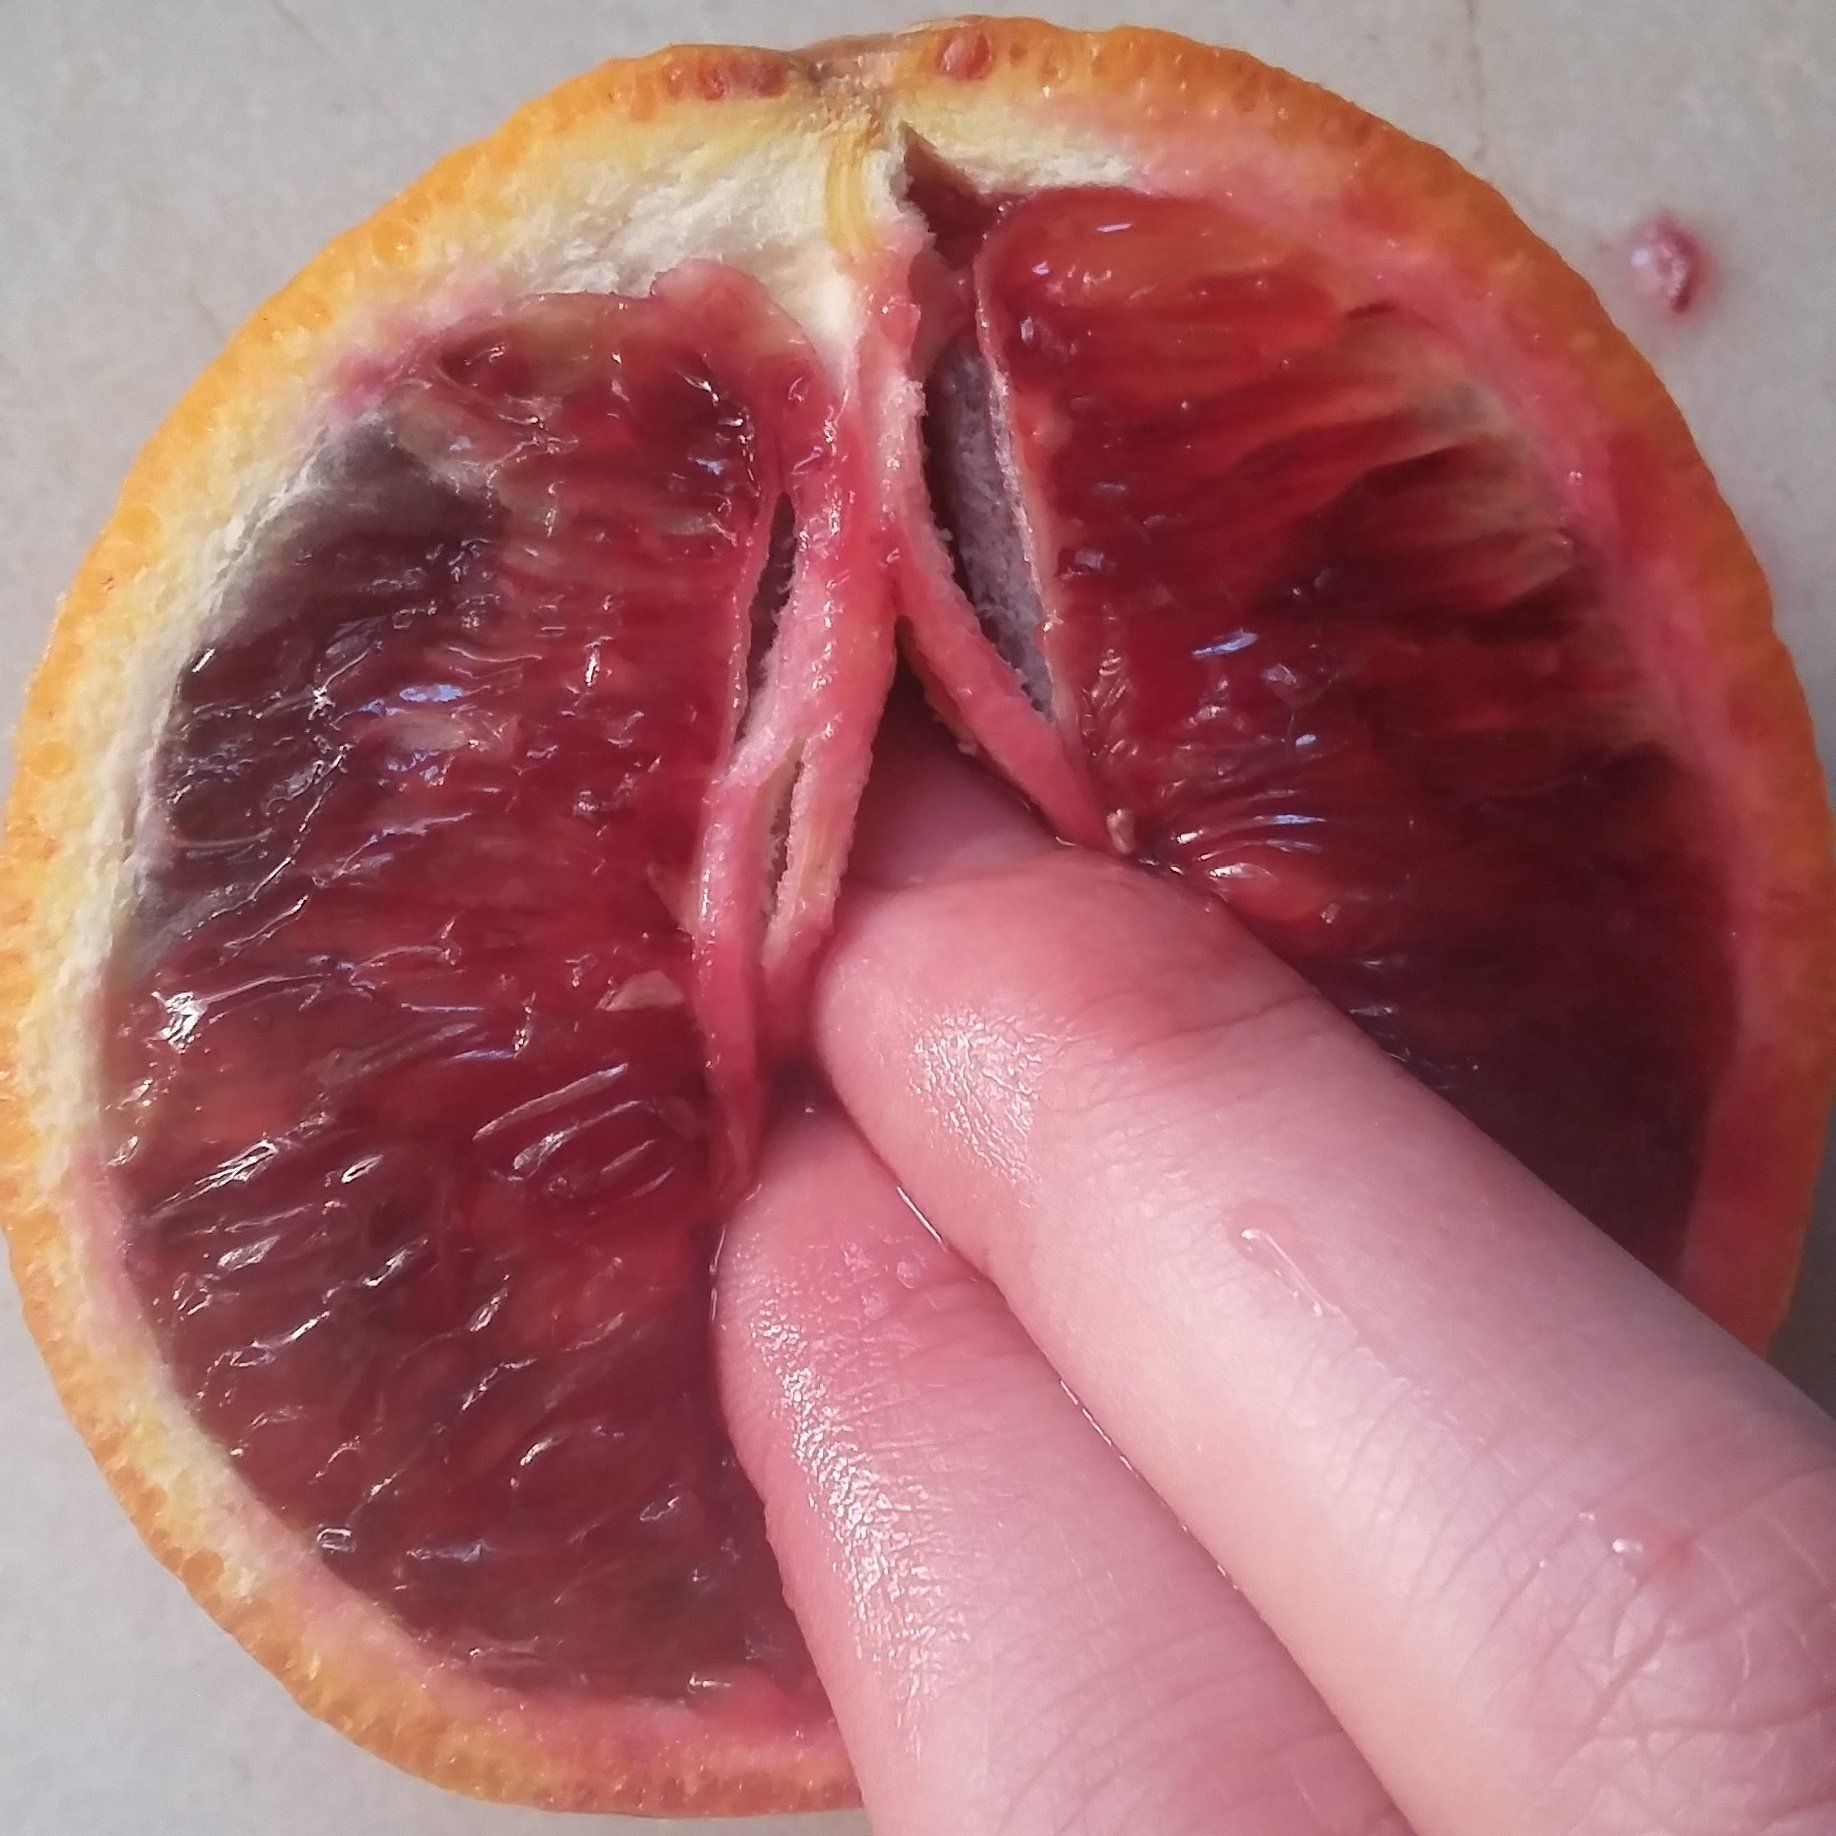 Fruit of the vulva